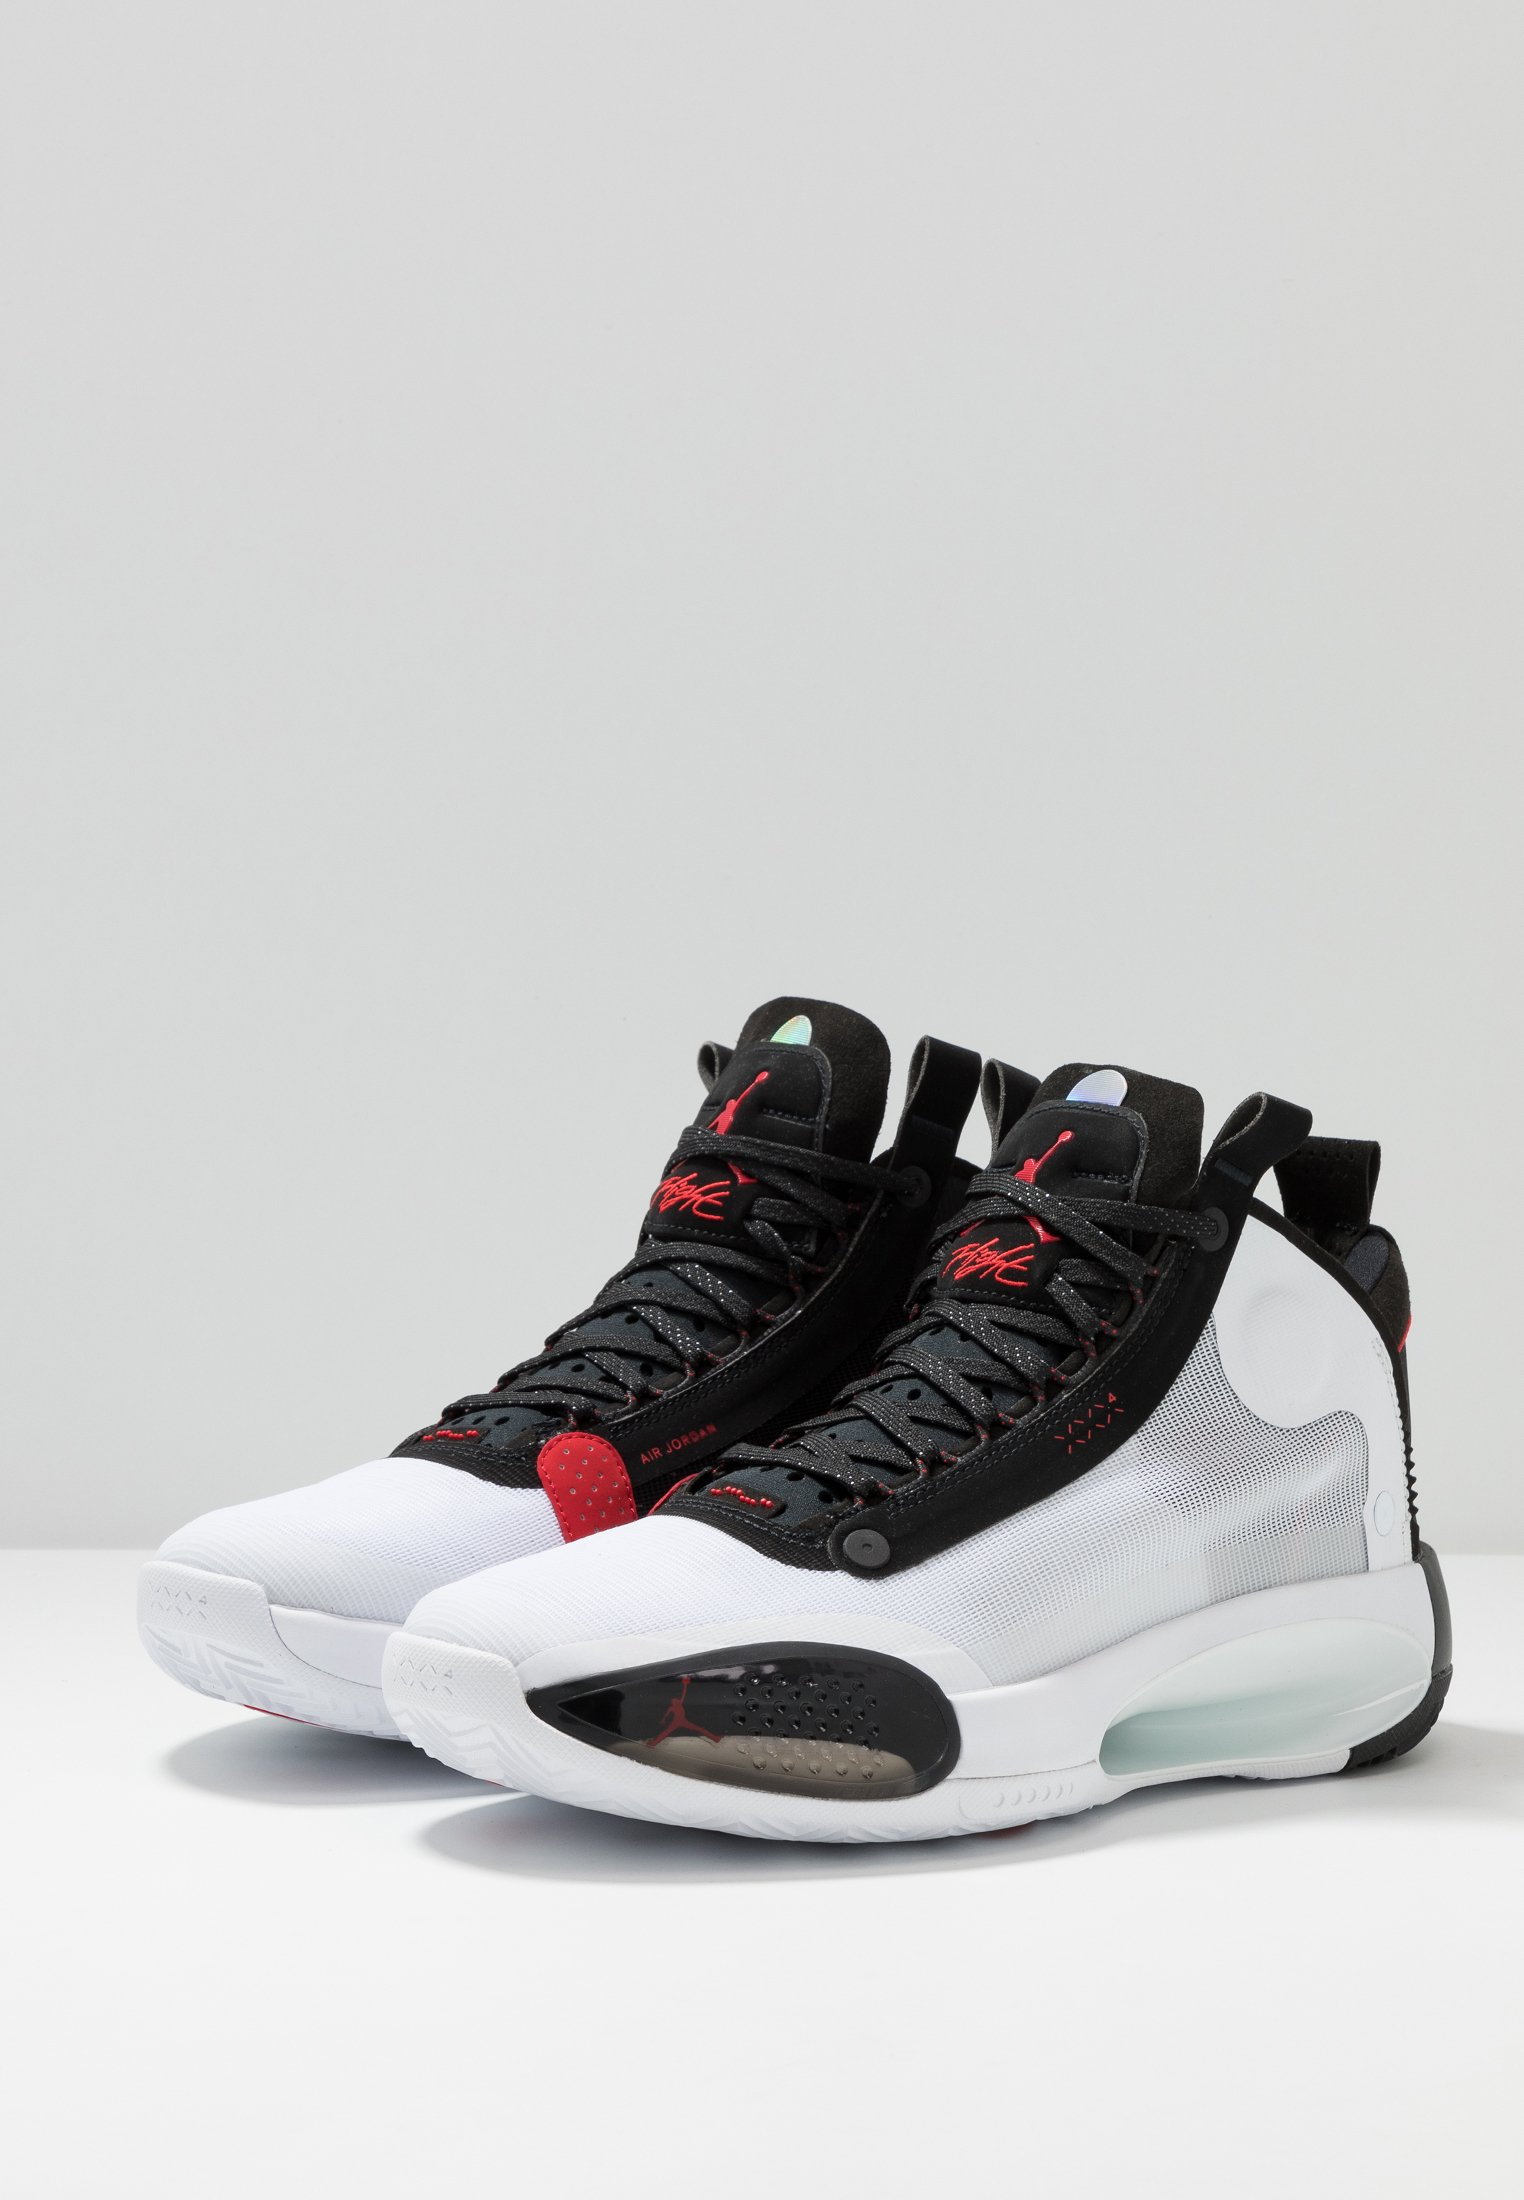 AIR XXXIV Indoorskor whitered orbitblack